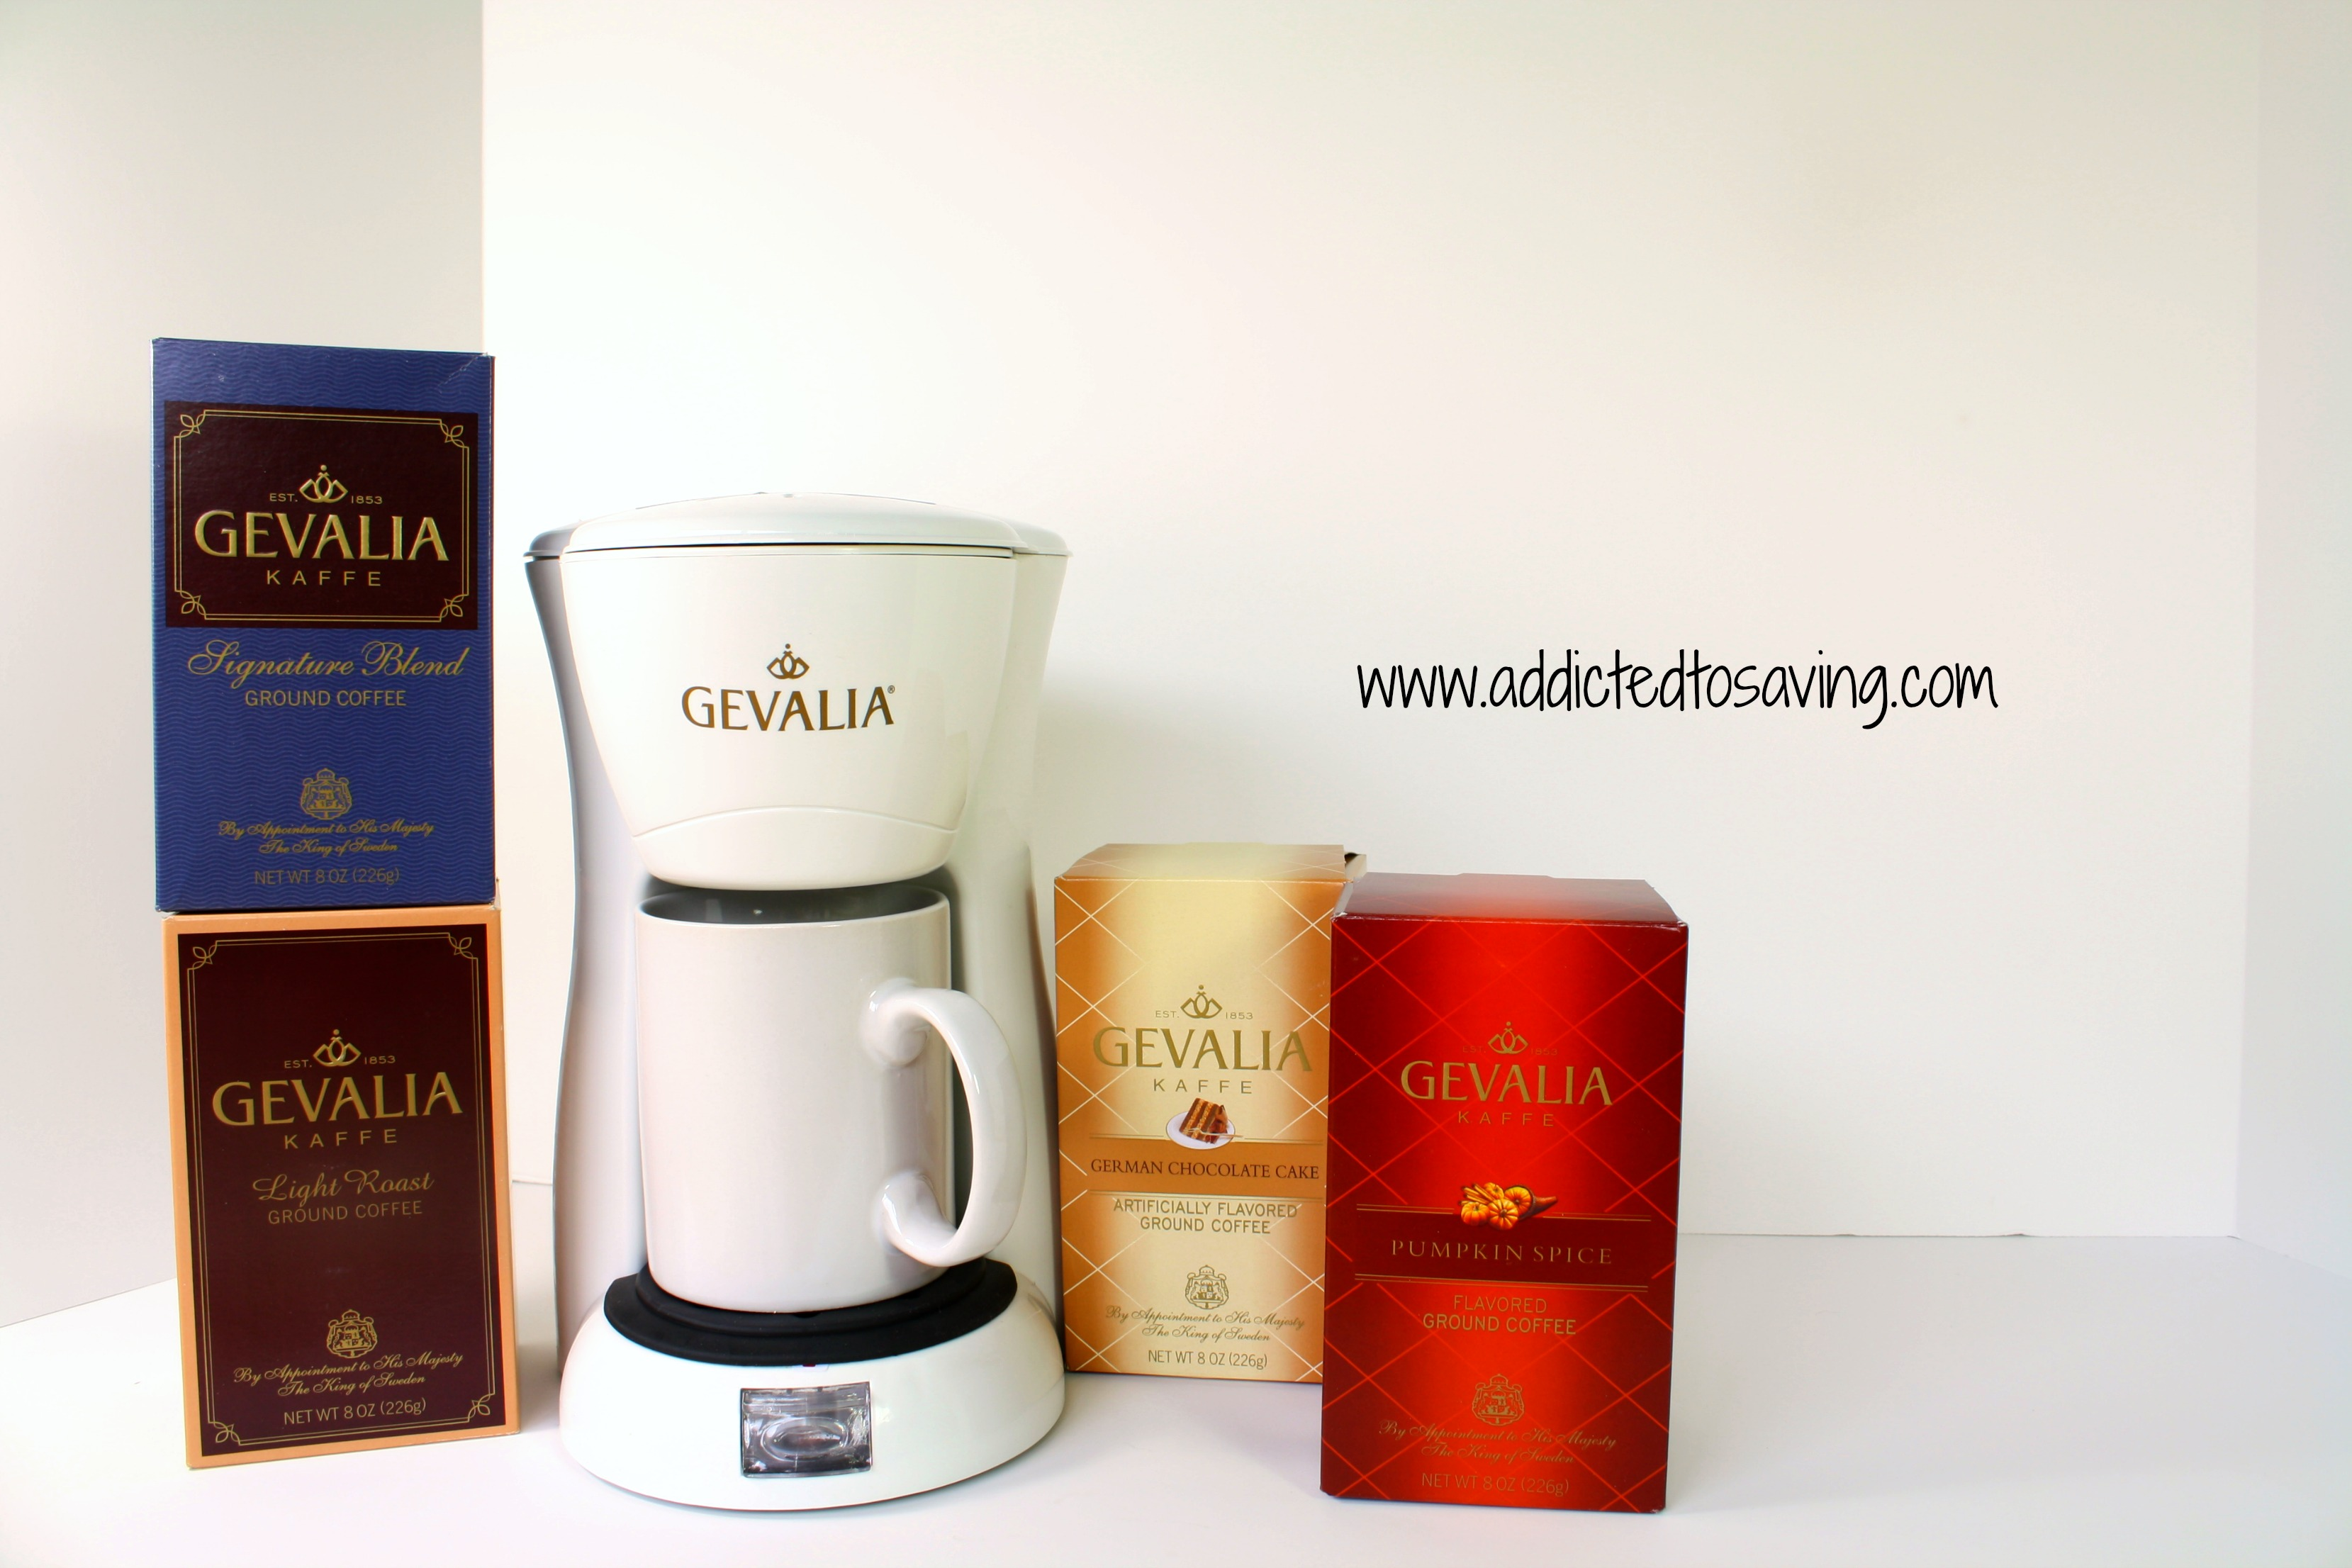 Gevalia One Cup Coffee Maker : *HOT* Look What I Got Today - Gevalia Single-Cup Coffeemaker & 4 Boxes of Coffee, USD 9.99 SHIPPED ...